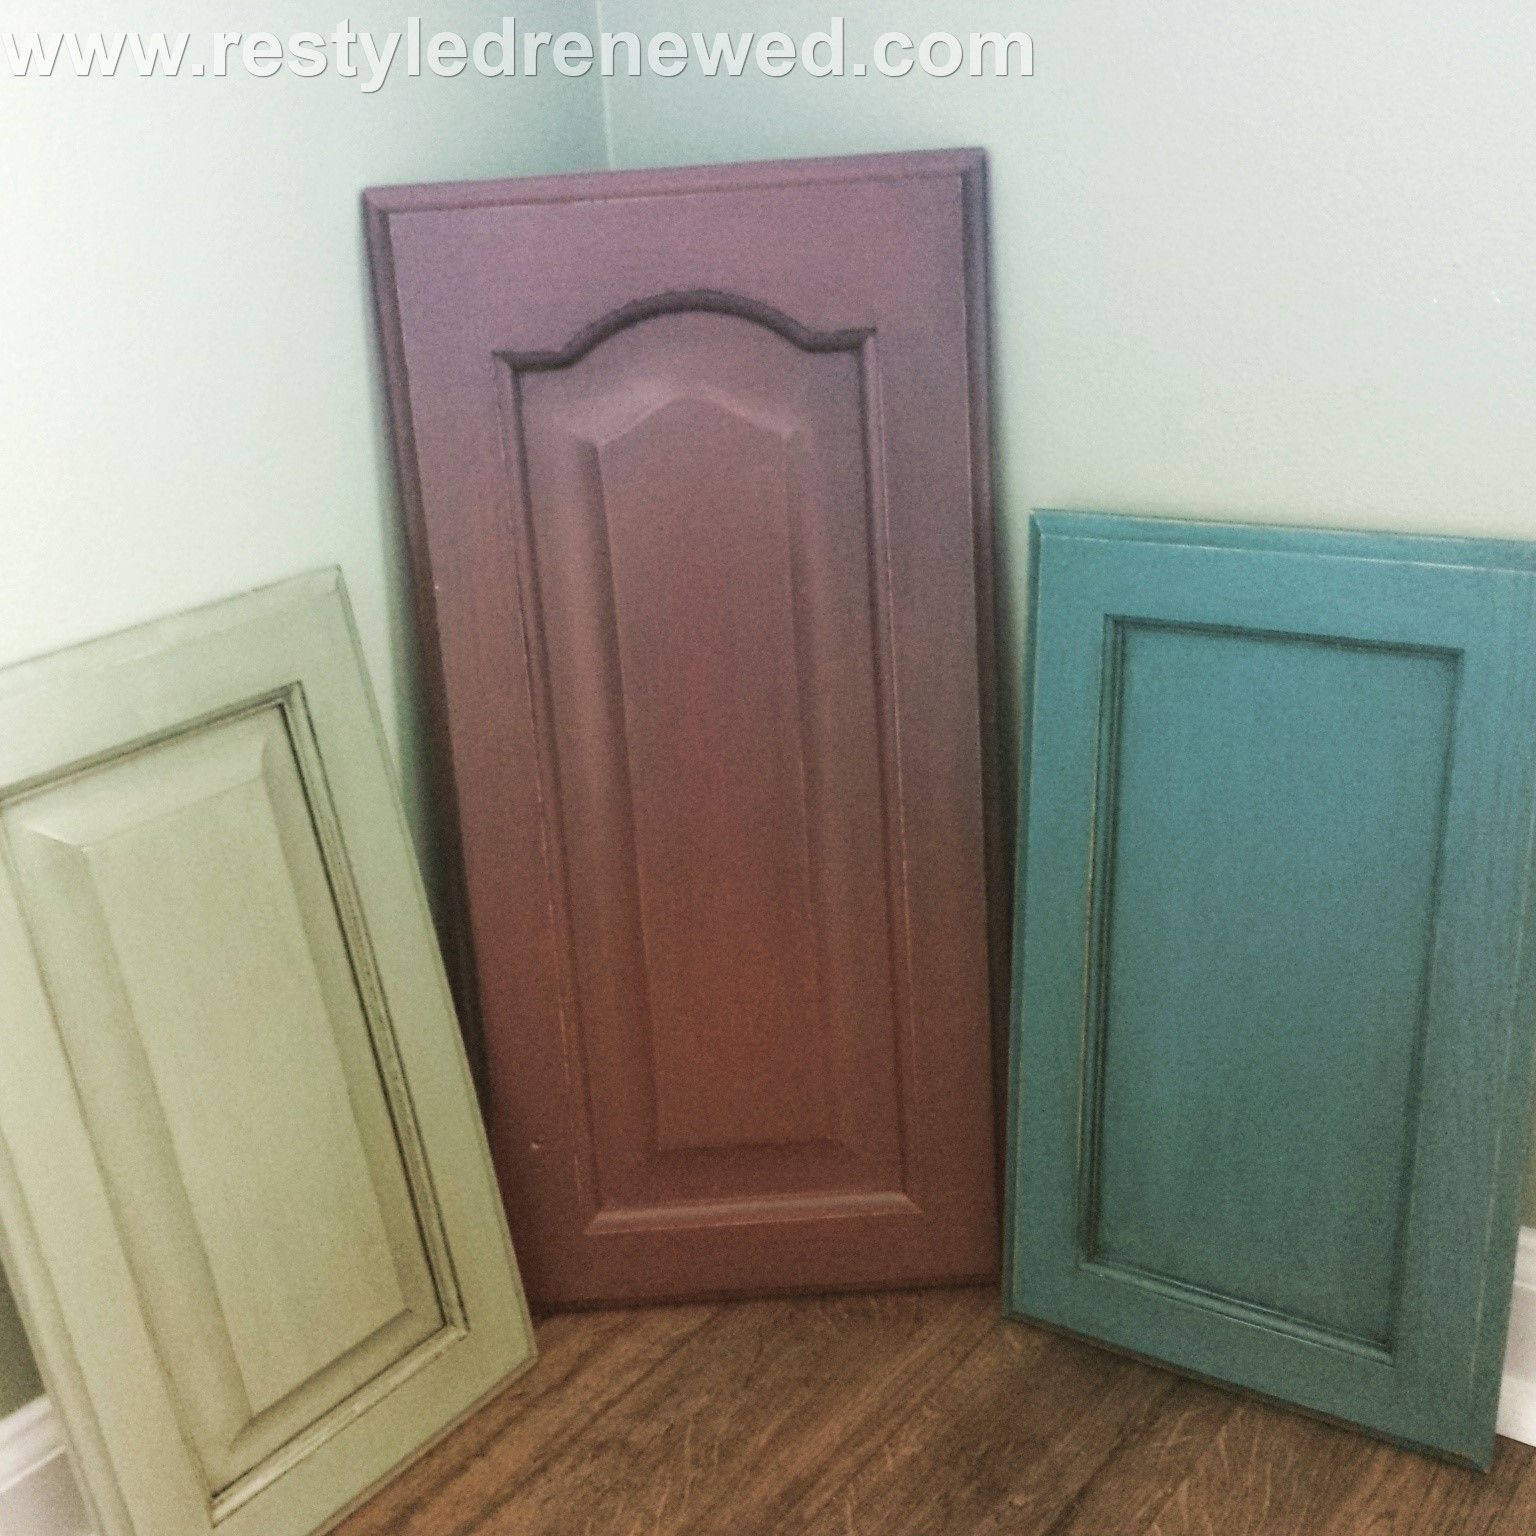 Red Kitchen Cupboard Doors Annie Sloan Chalk Paint Kitchen Cabinet Painted Door Samples I Did